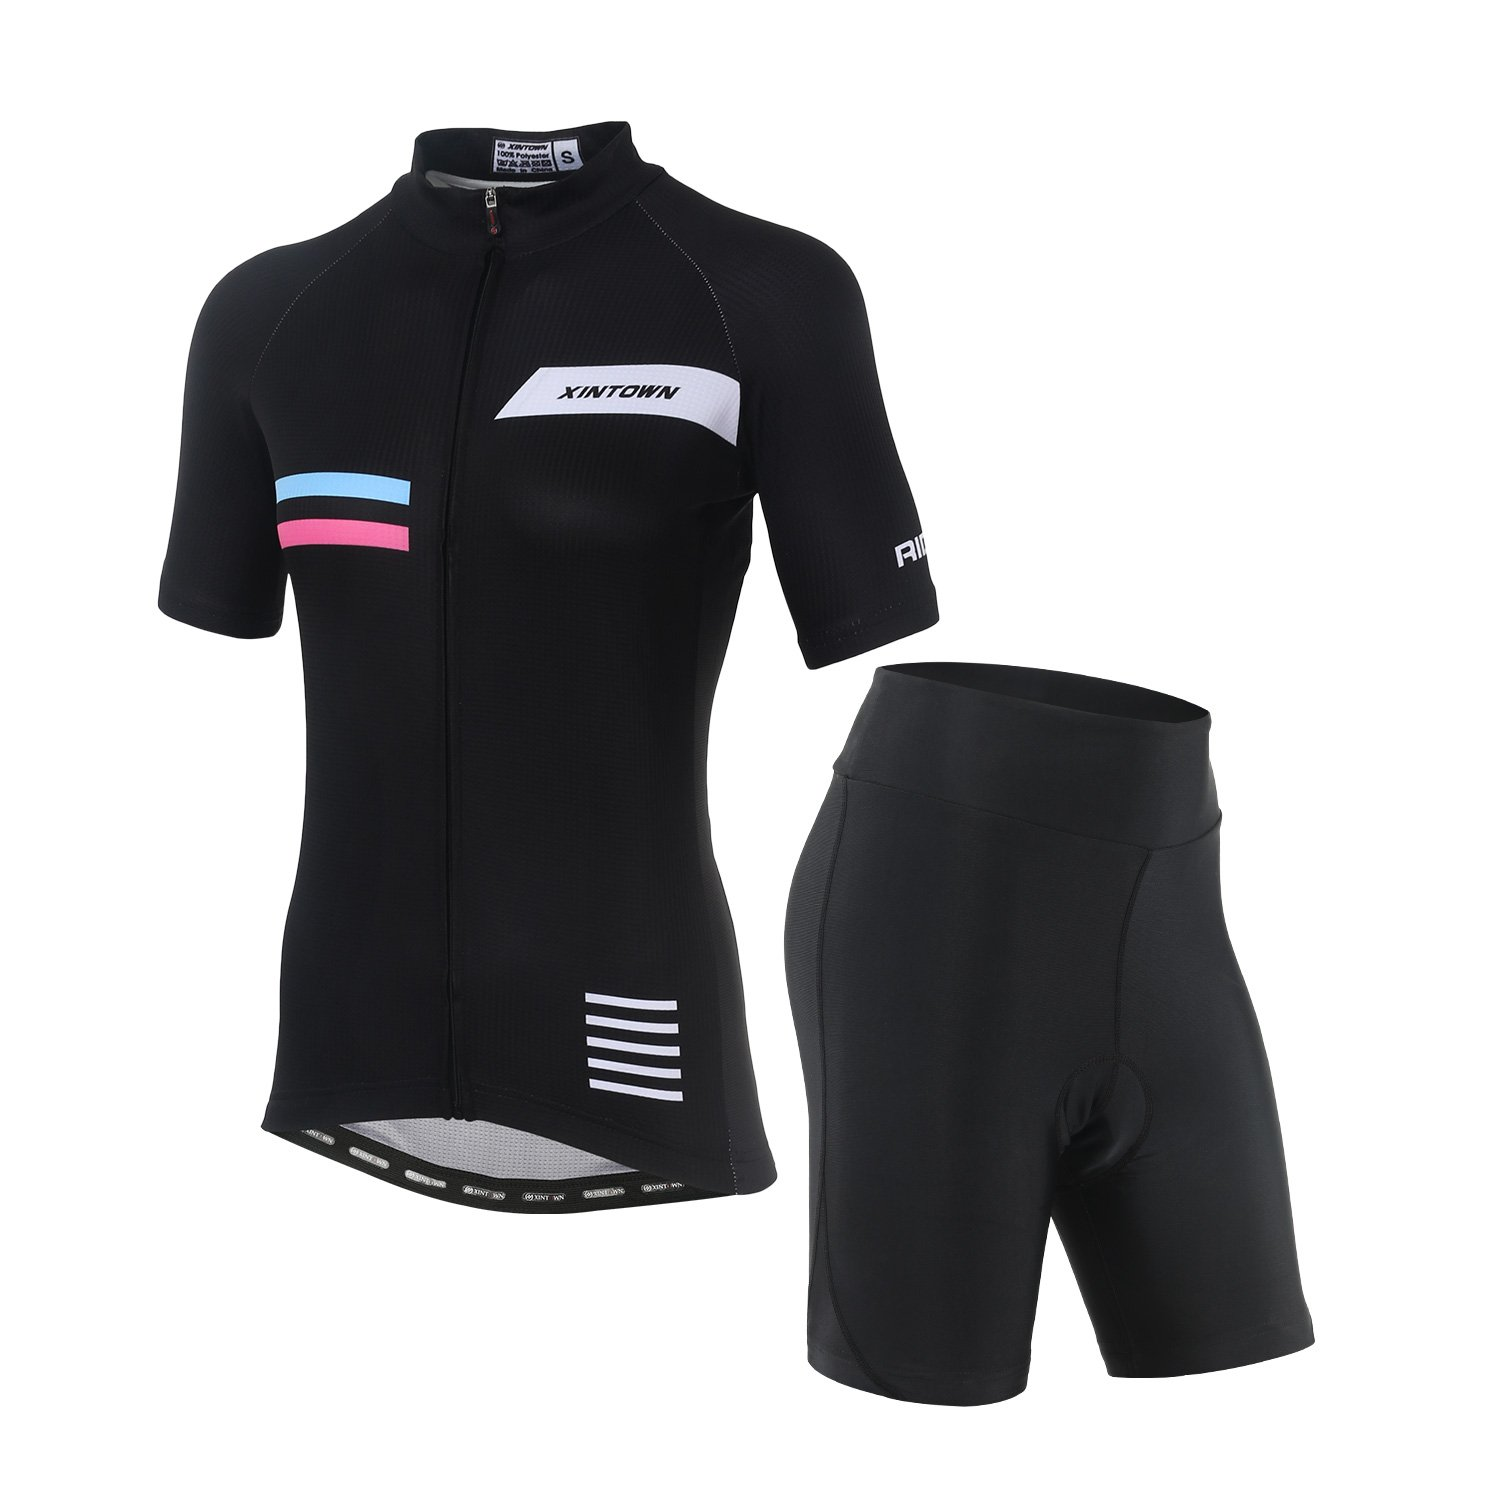 DuShow Women's Short Sleeve Cycling Jersey/Bicycle Top and 3D Padded Shorts Set (XXL, Elegant) by DuShow